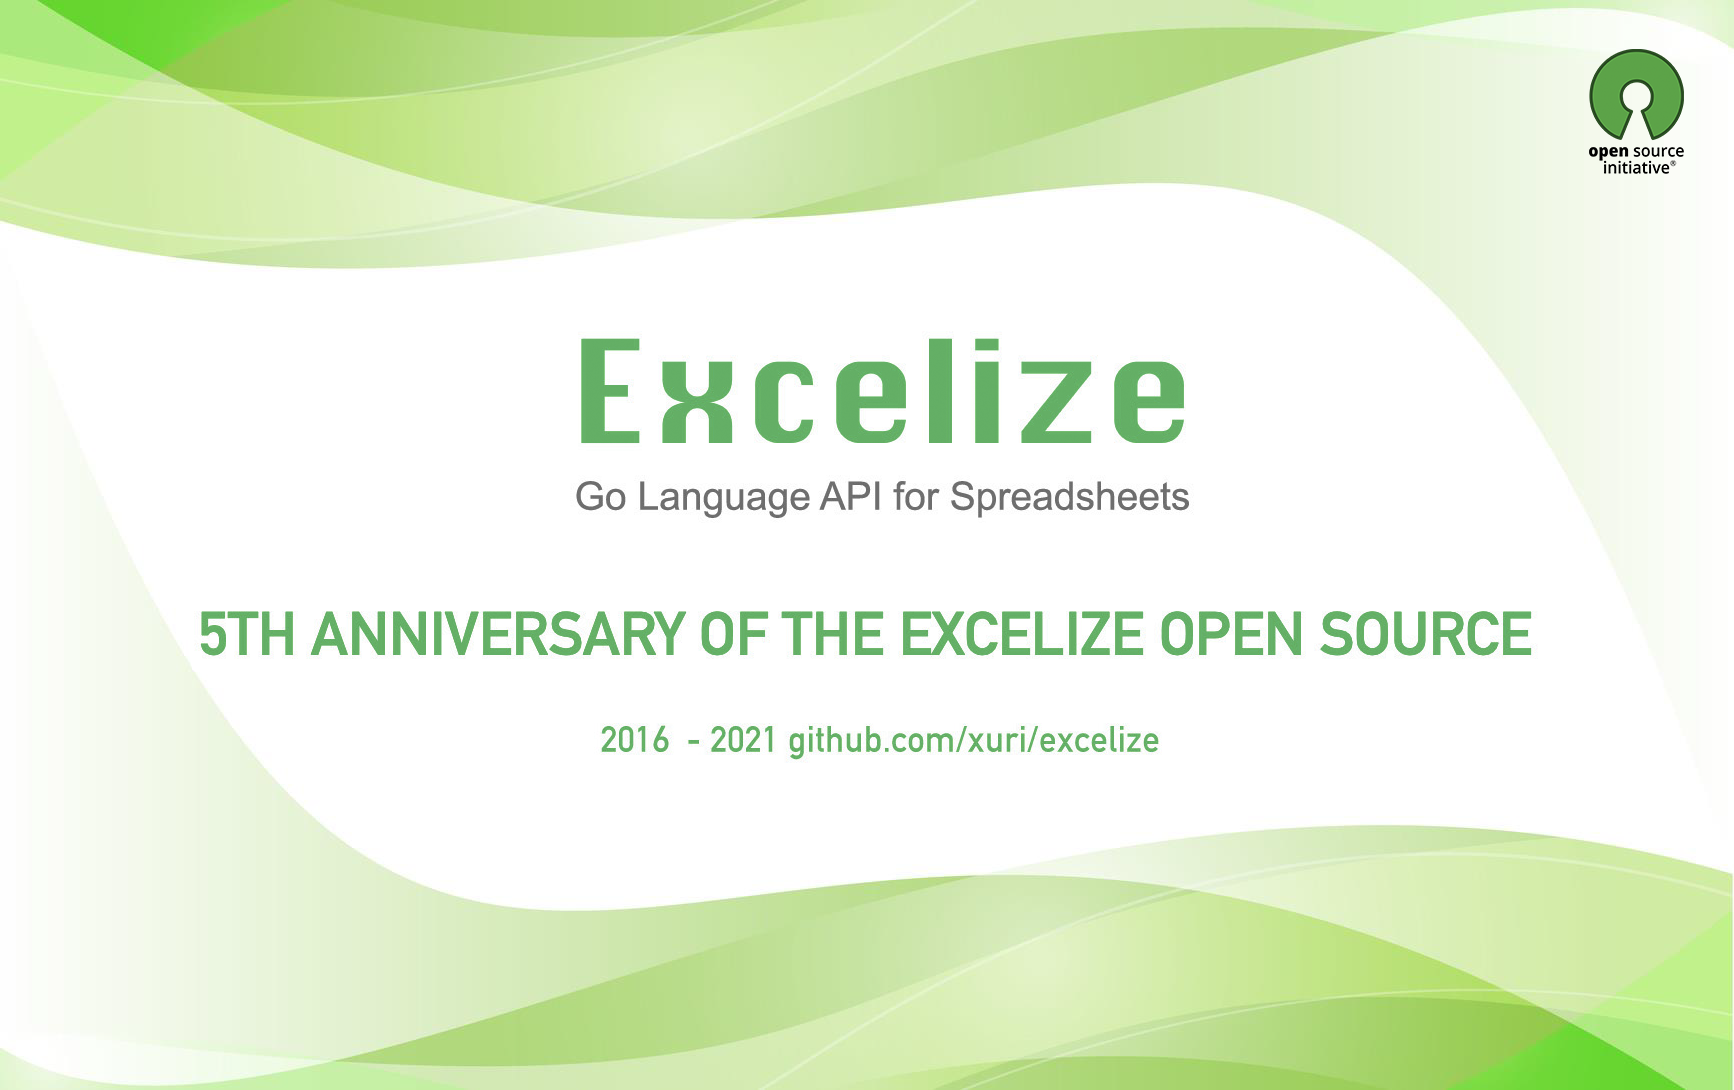 5th Anniversary of the Excelize Open Source